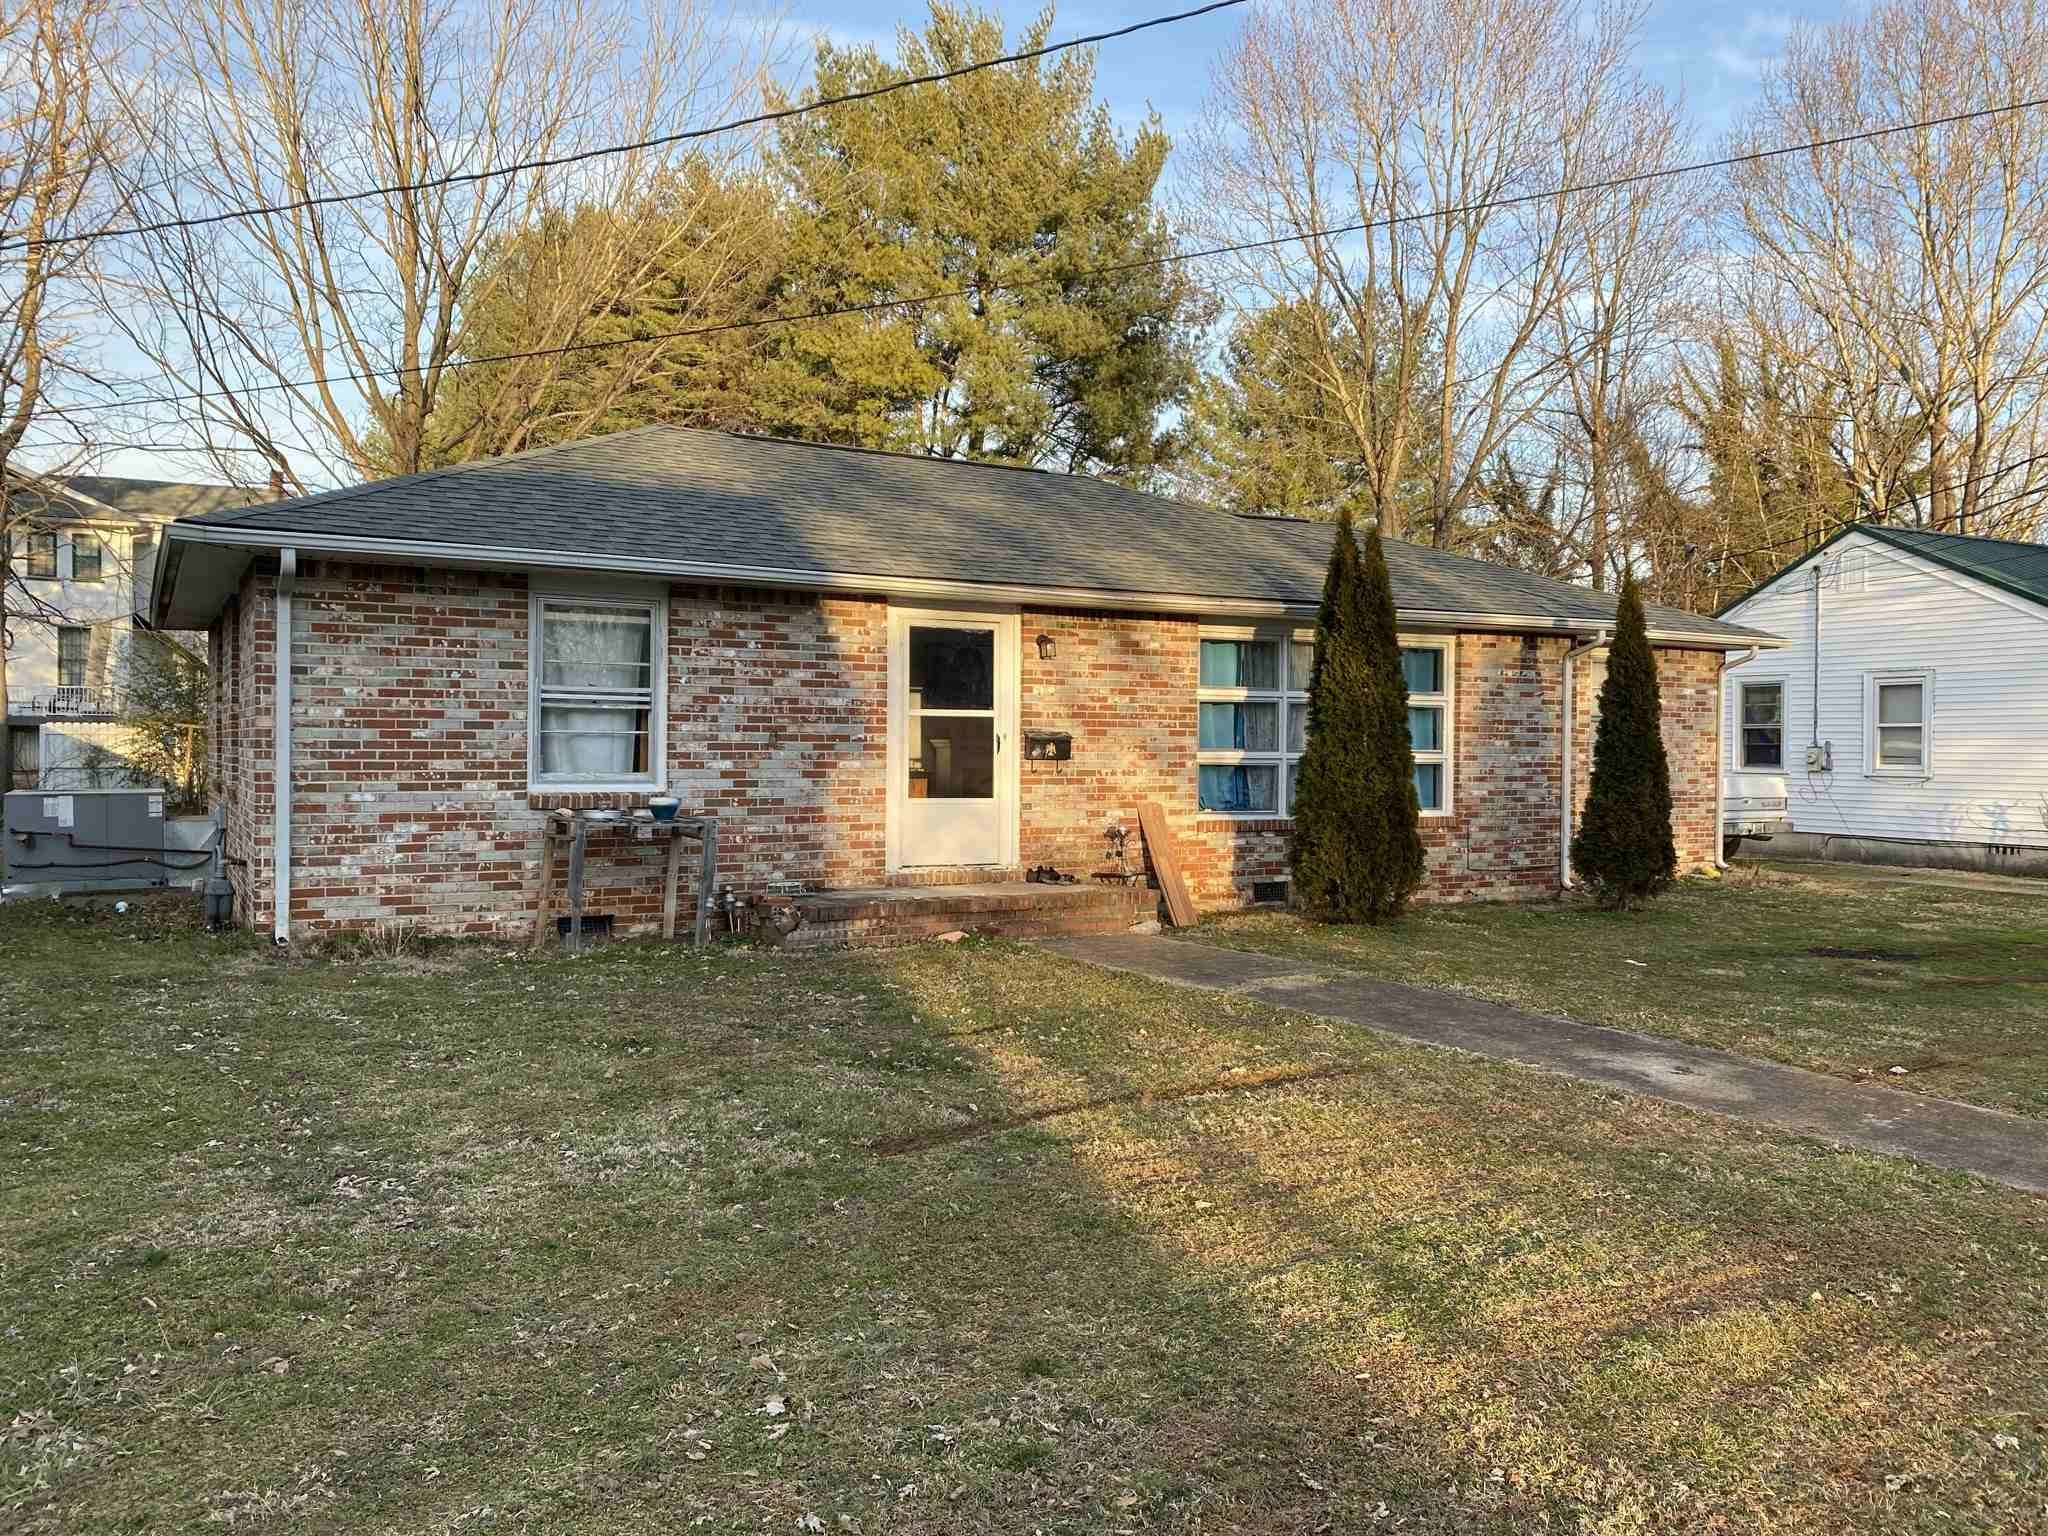 518 N Vine St Property Photo - Winchester, TN real estate listing